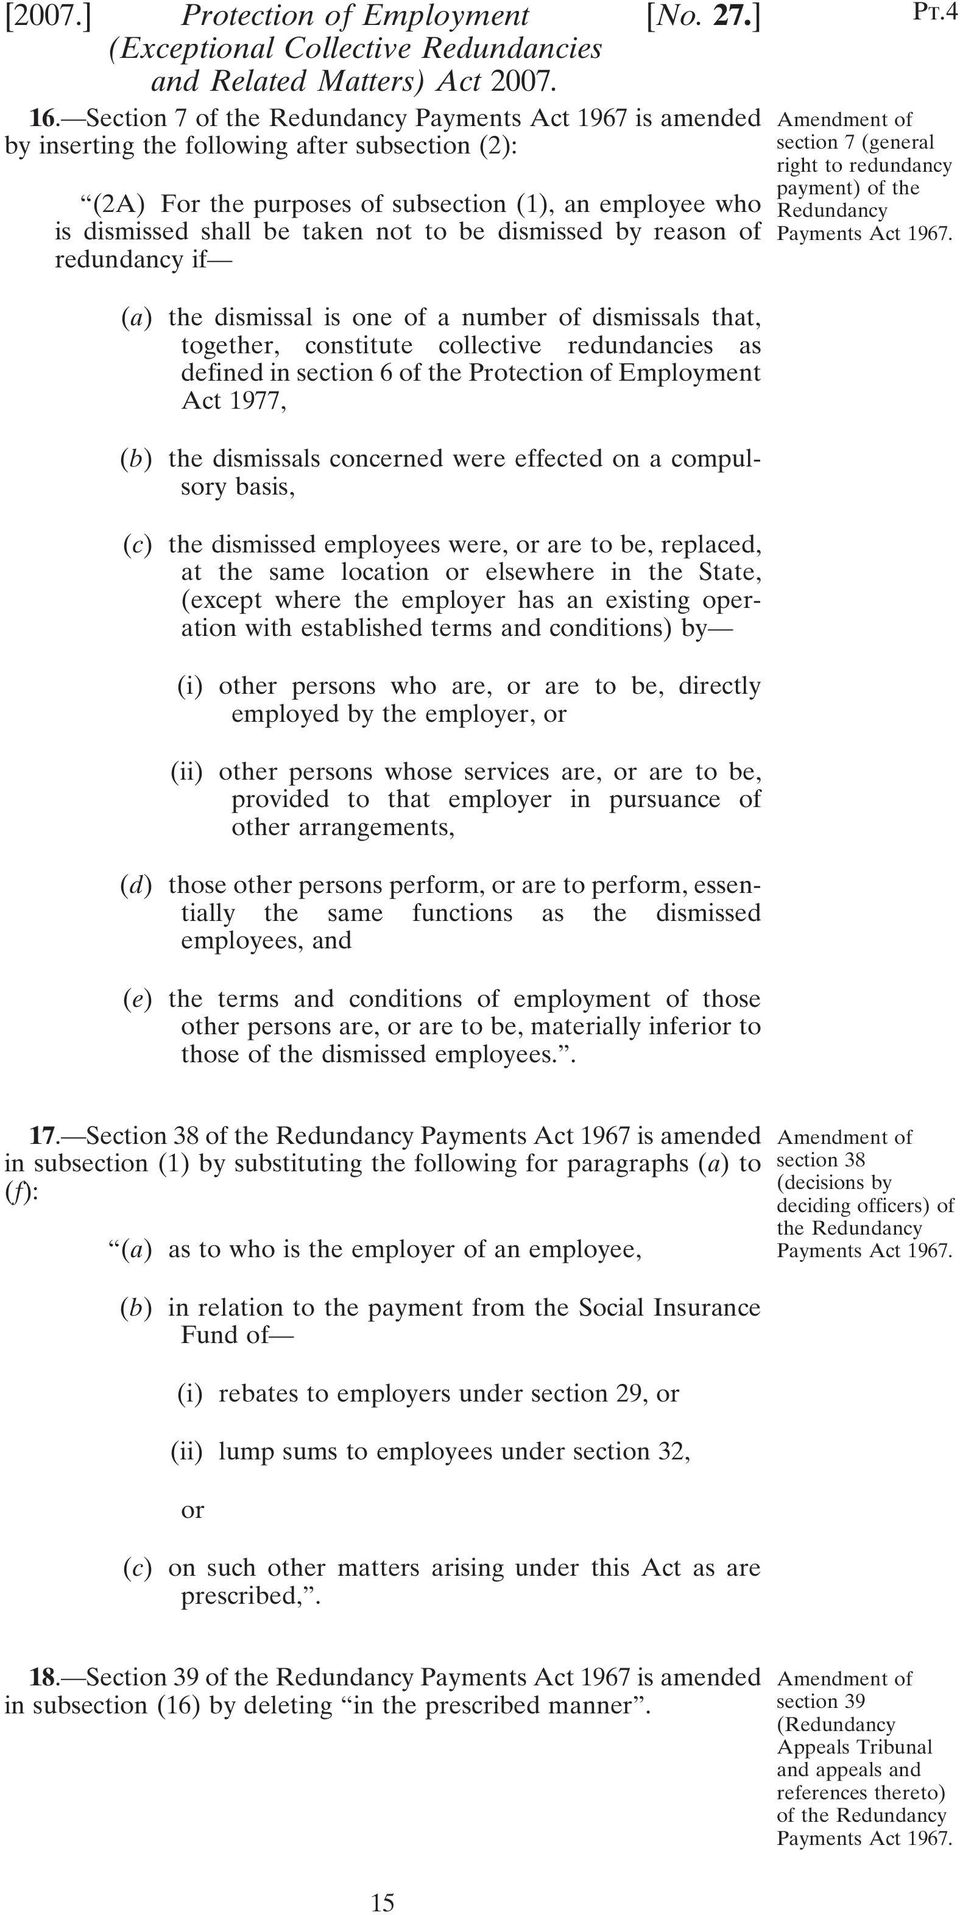 be dismissed by reason of redundancy if (a) the dismissal is one of a number of dismissals that, together, constitute collective redundancies as defined in section 6 of the Protection of Employment